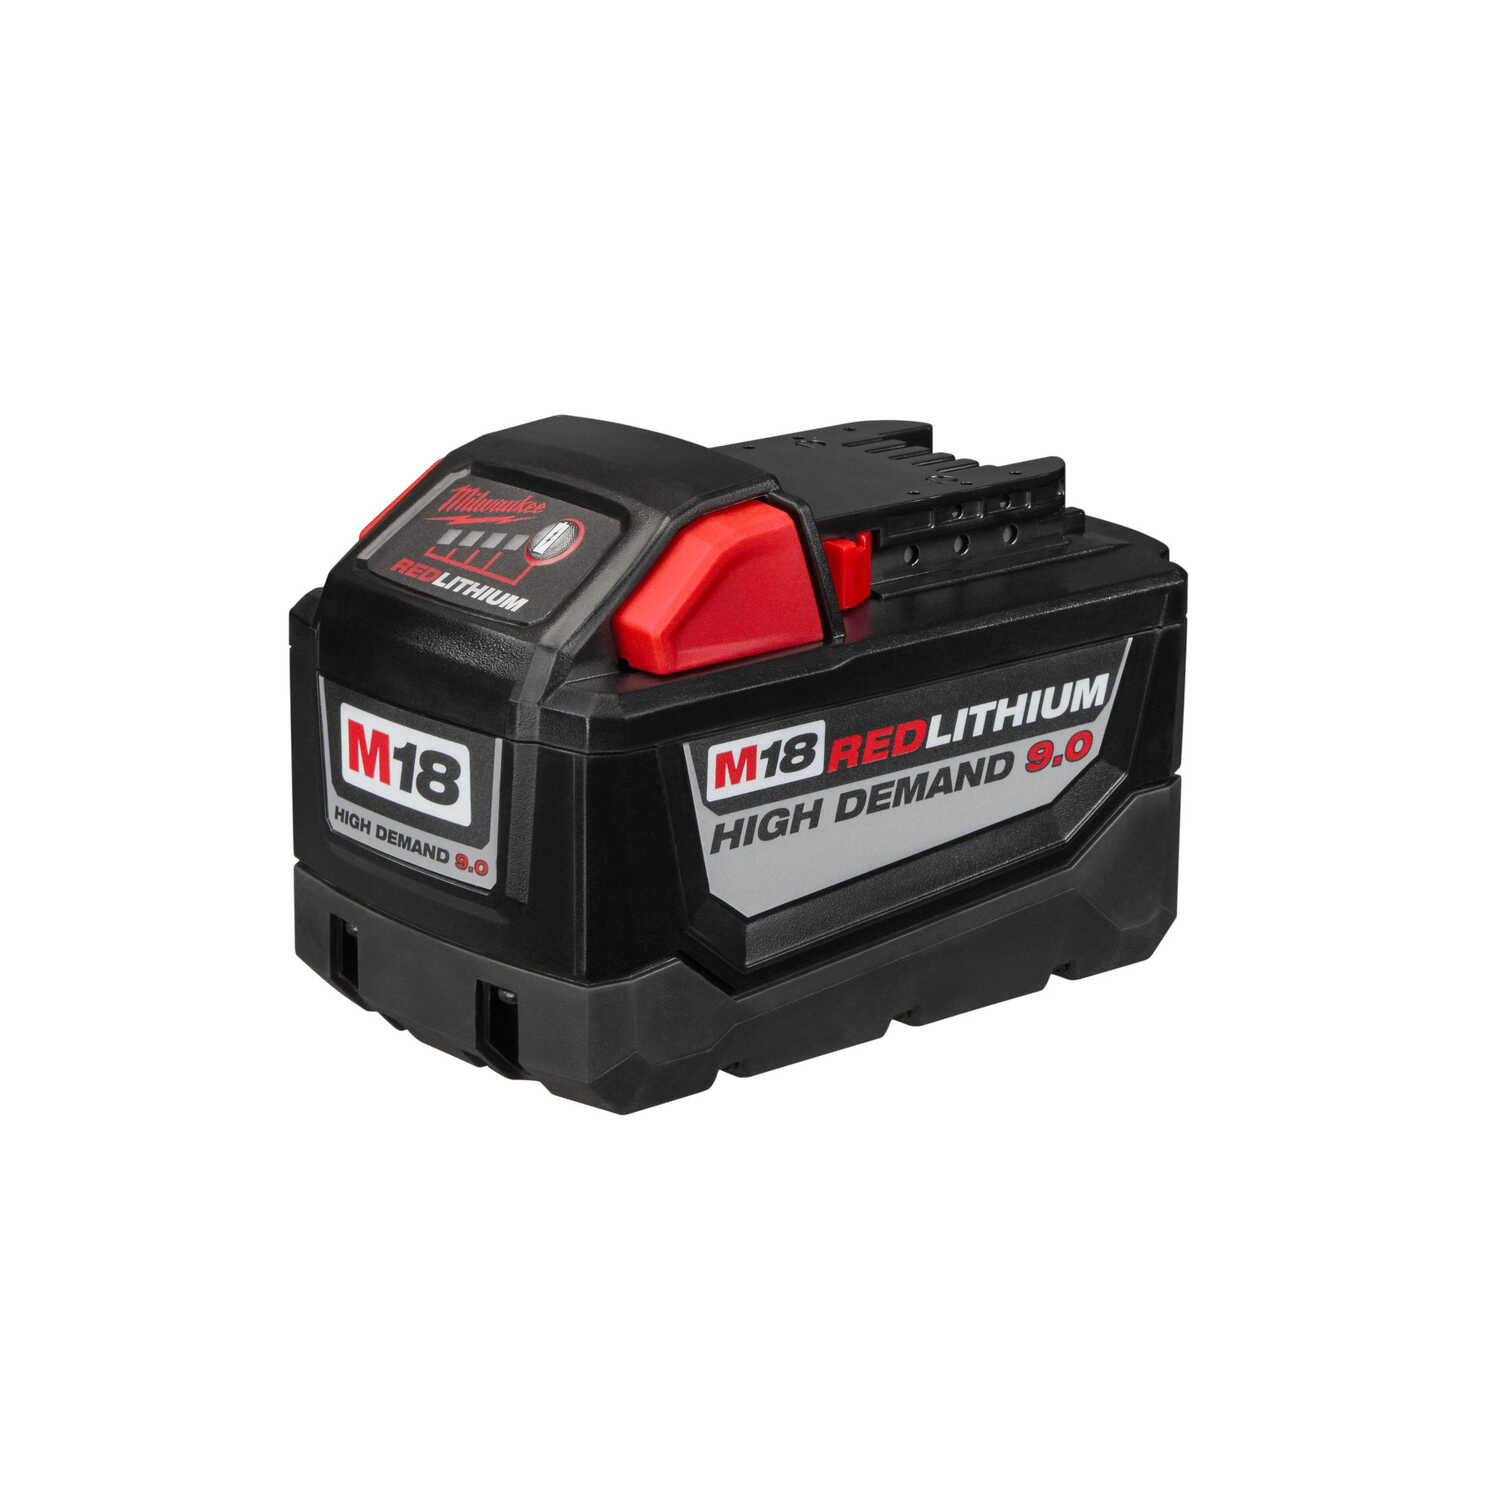 Milwaukee  M18 High Demand  9.0  HD 9.0  18 volt Lithium-Ion  High Capacity Battery Pack  1 pc.